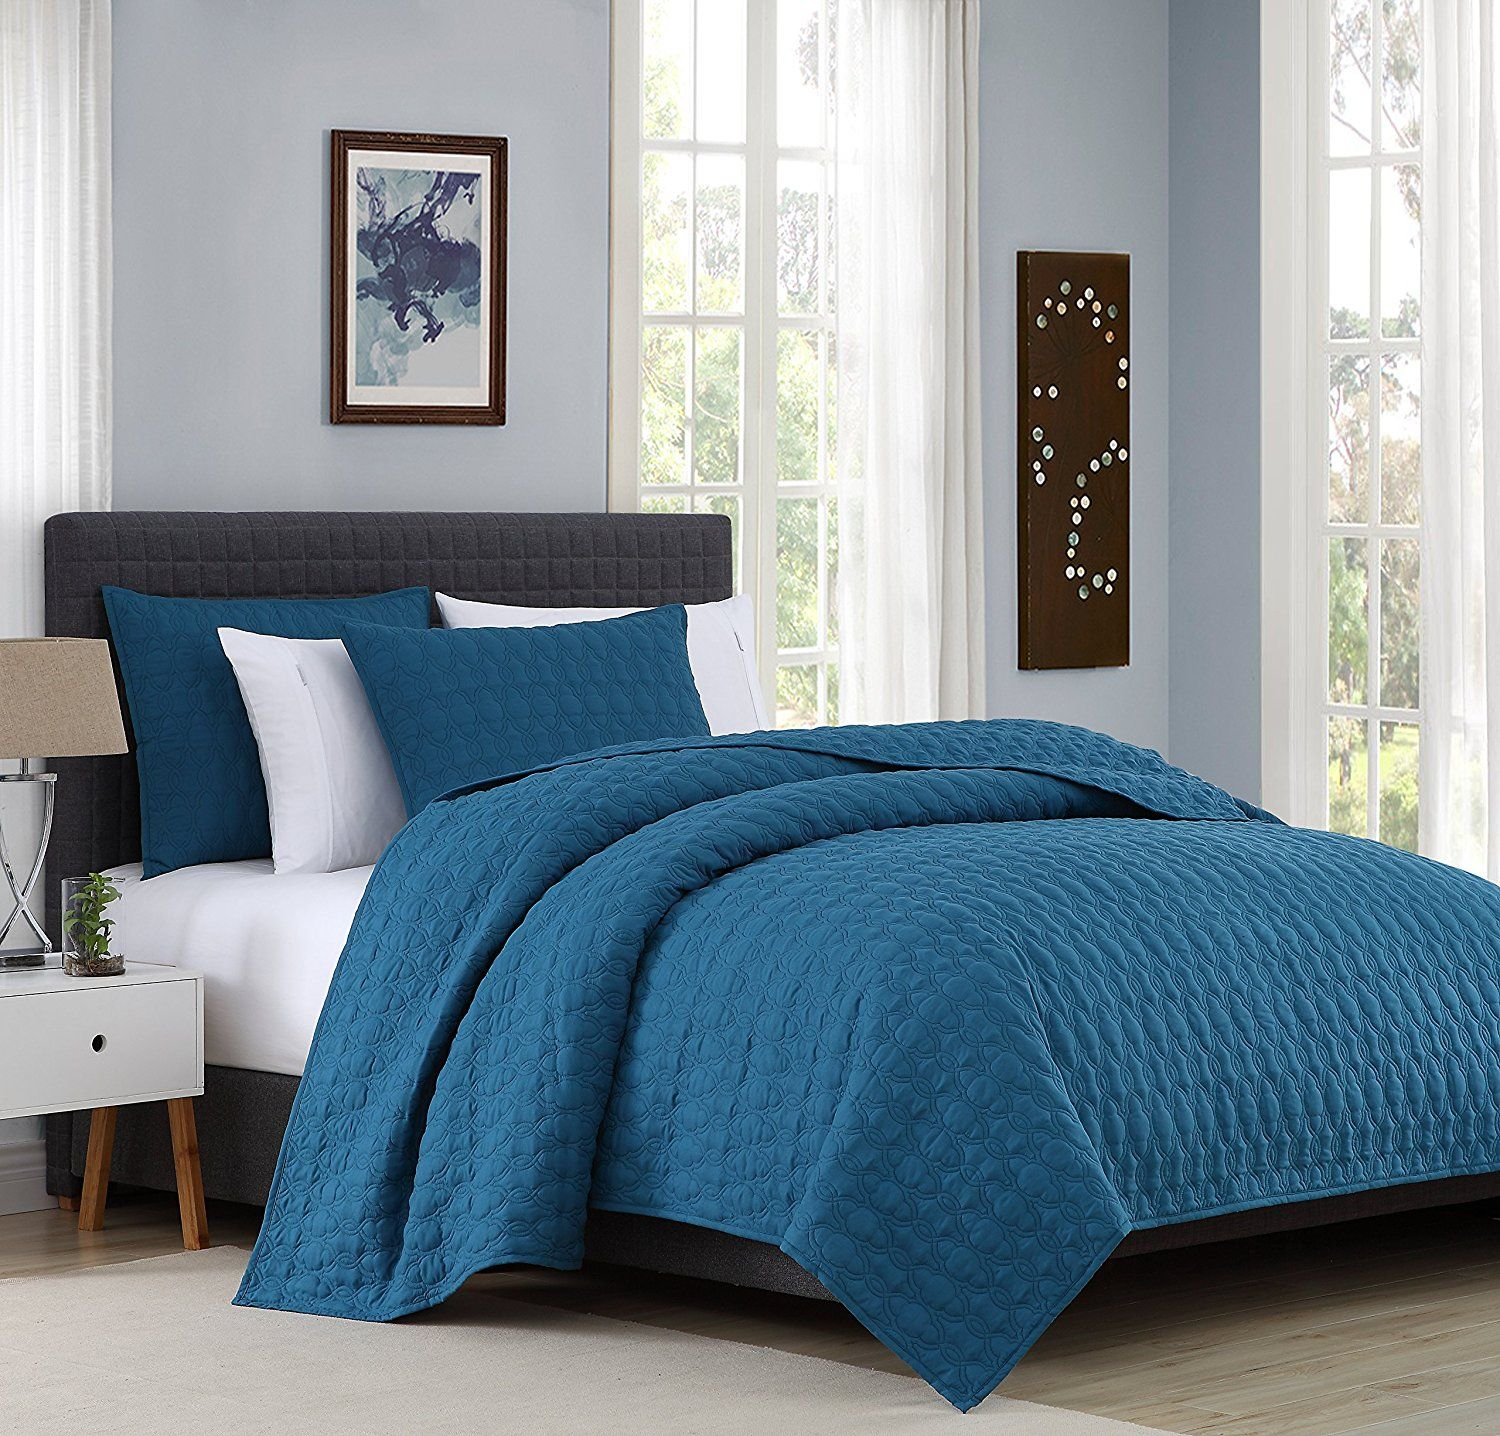 shipping free bath florence velvet product overstock today quilts oversized sale quilt set on solid bedding